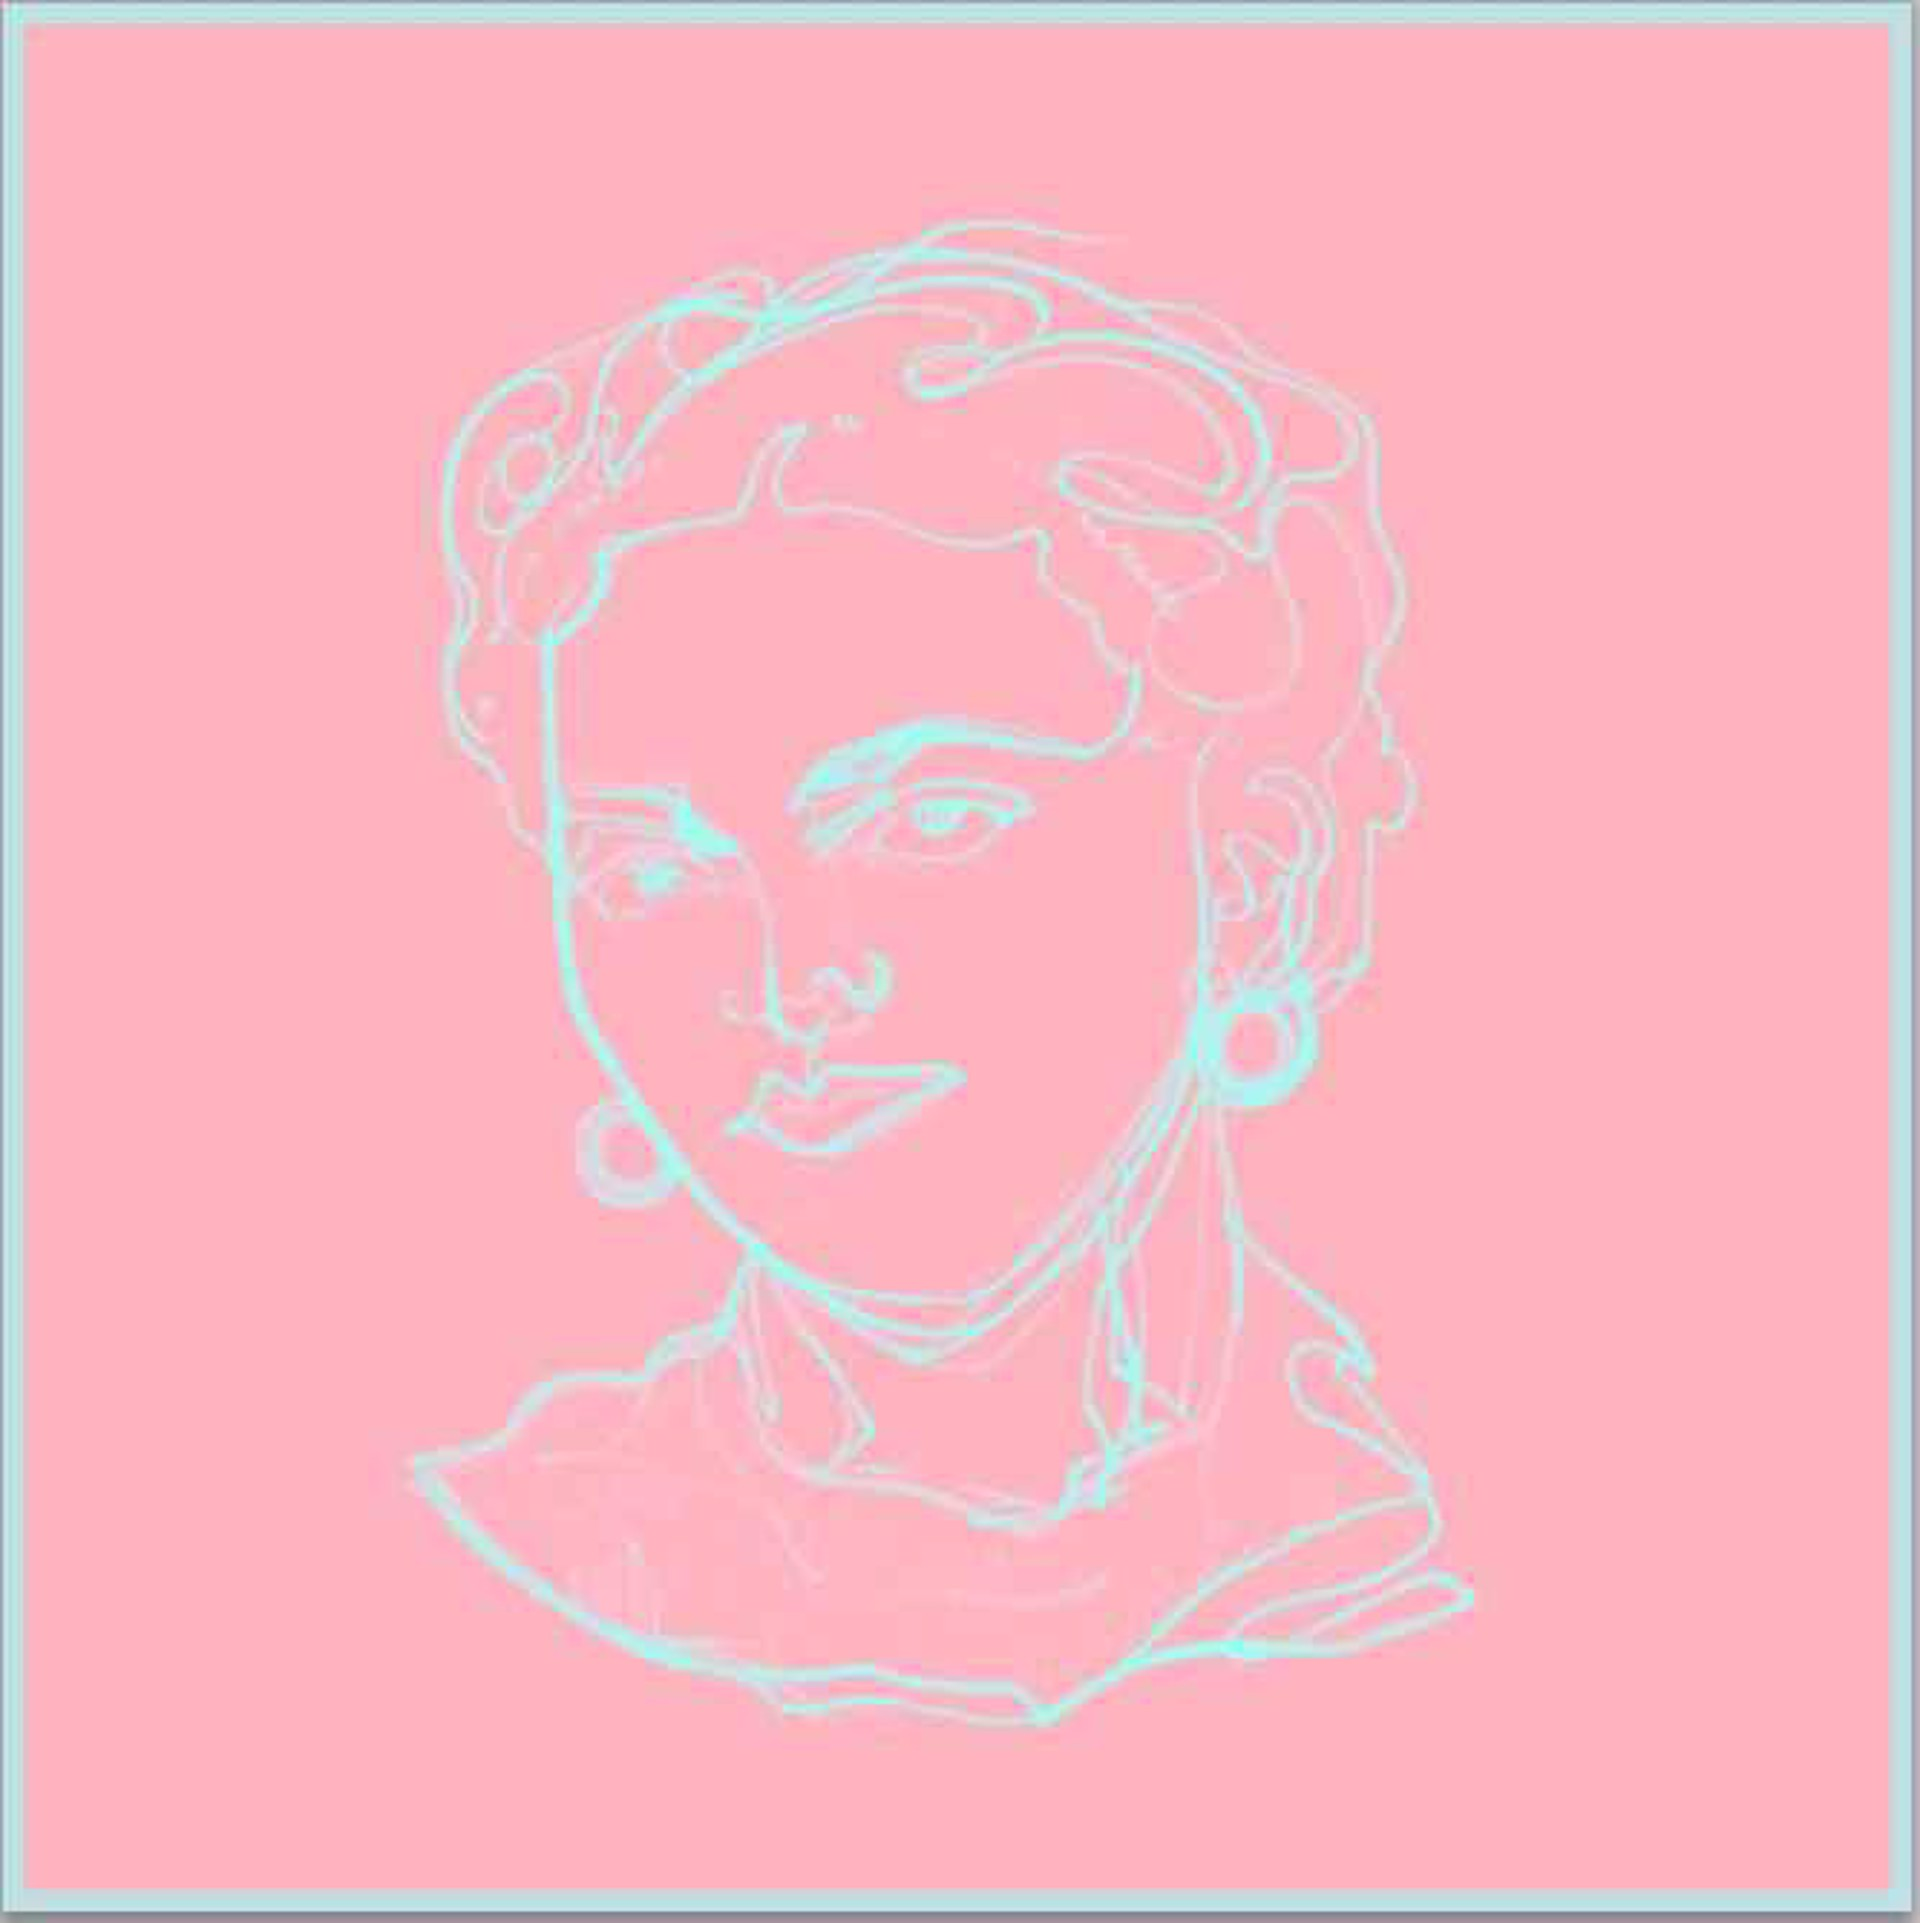 Cotton Candy Frida by Nicolle Dhimes